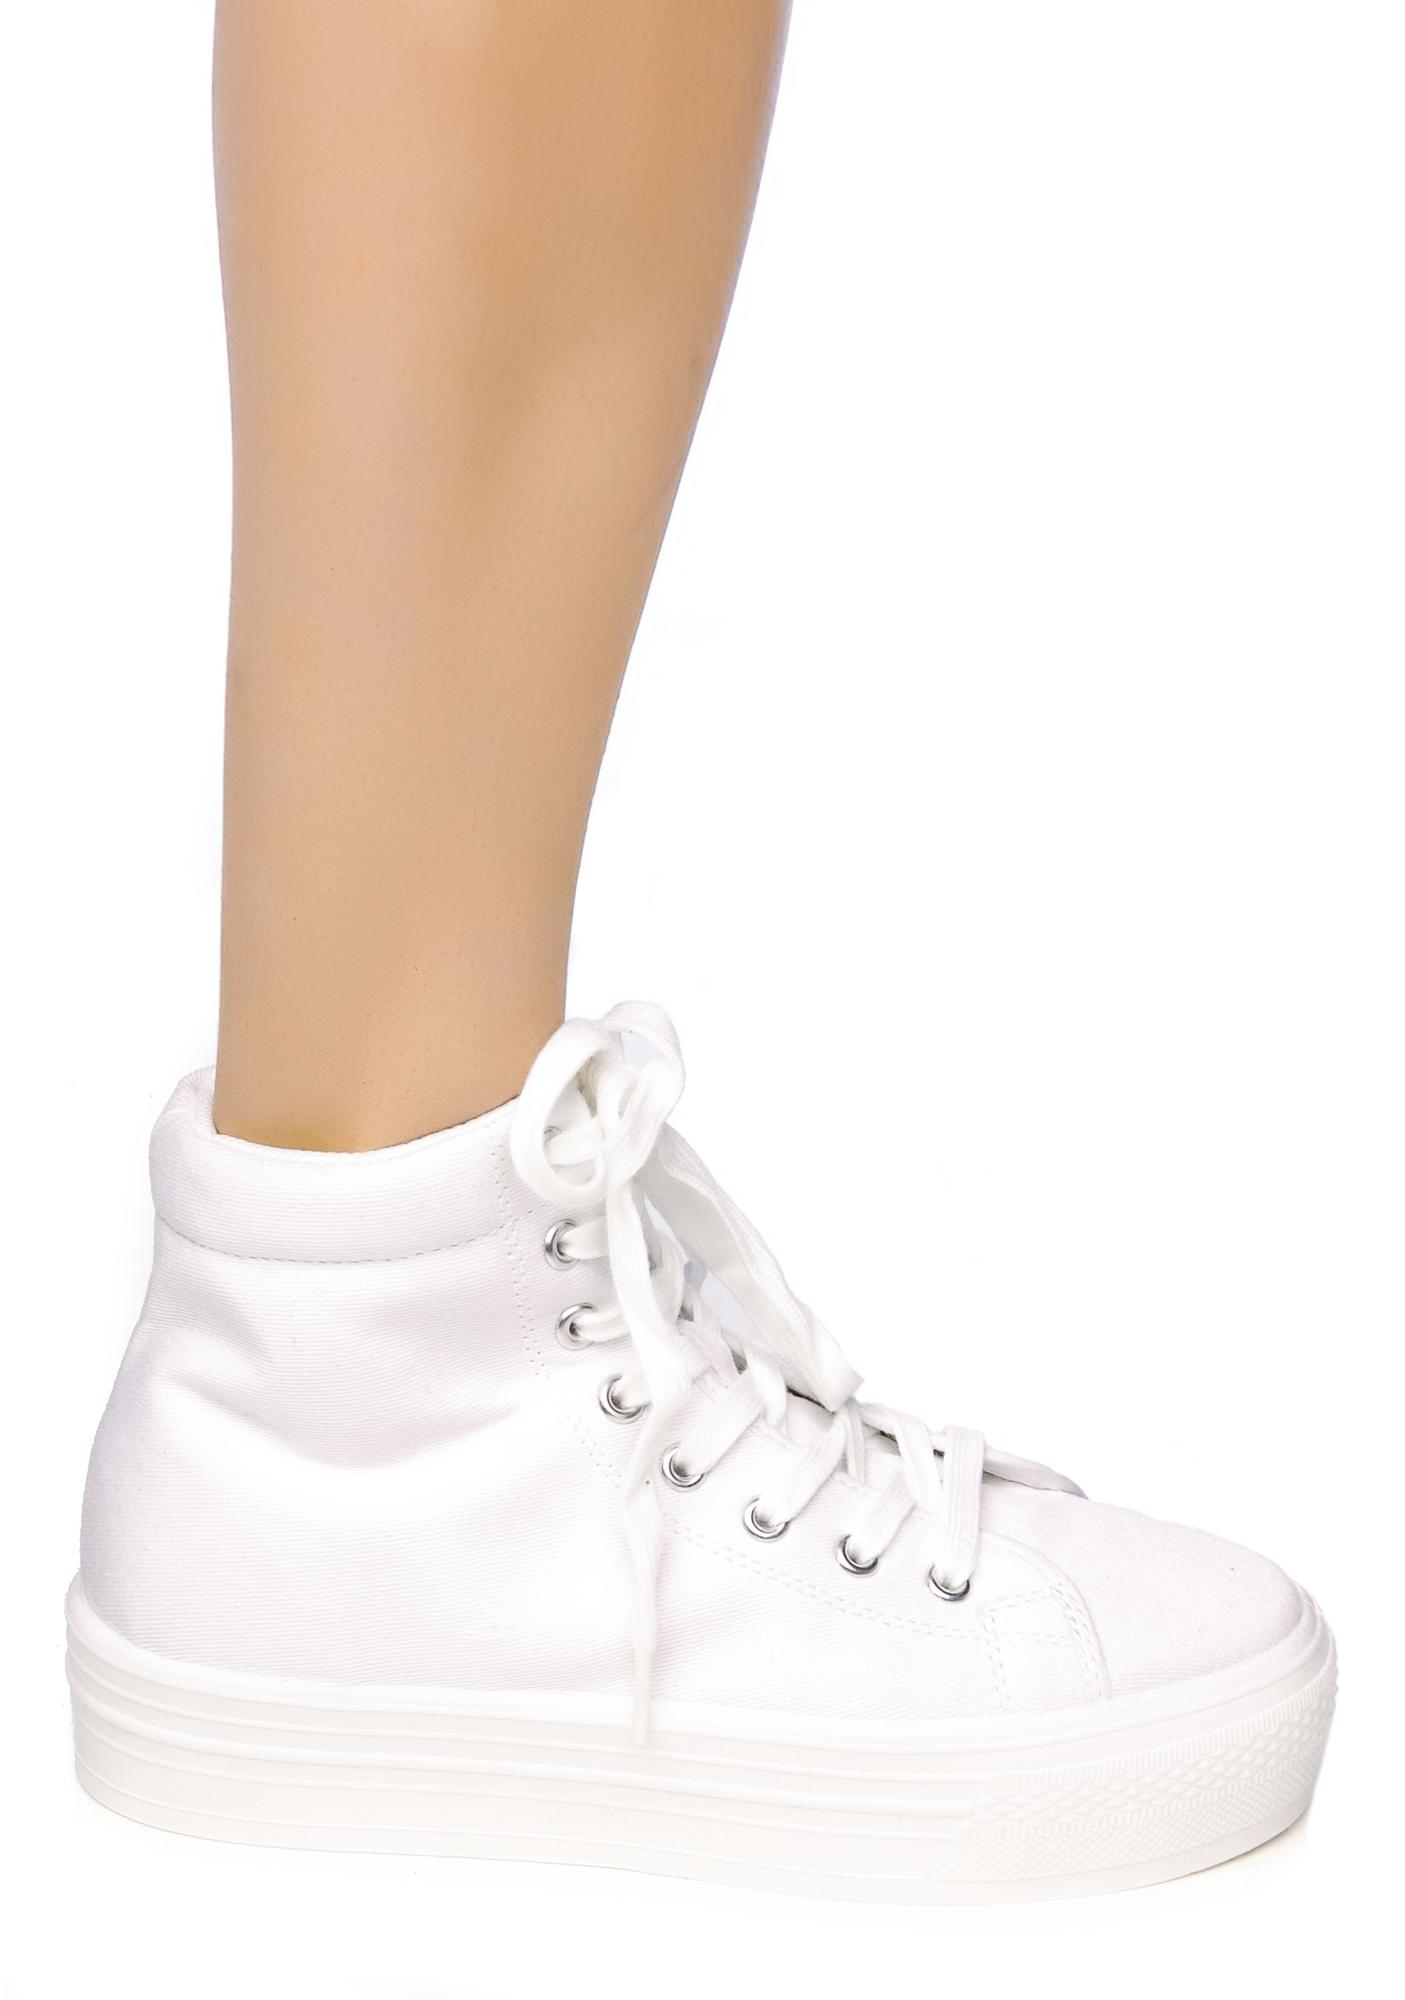 Sidekick Platform Sneakers